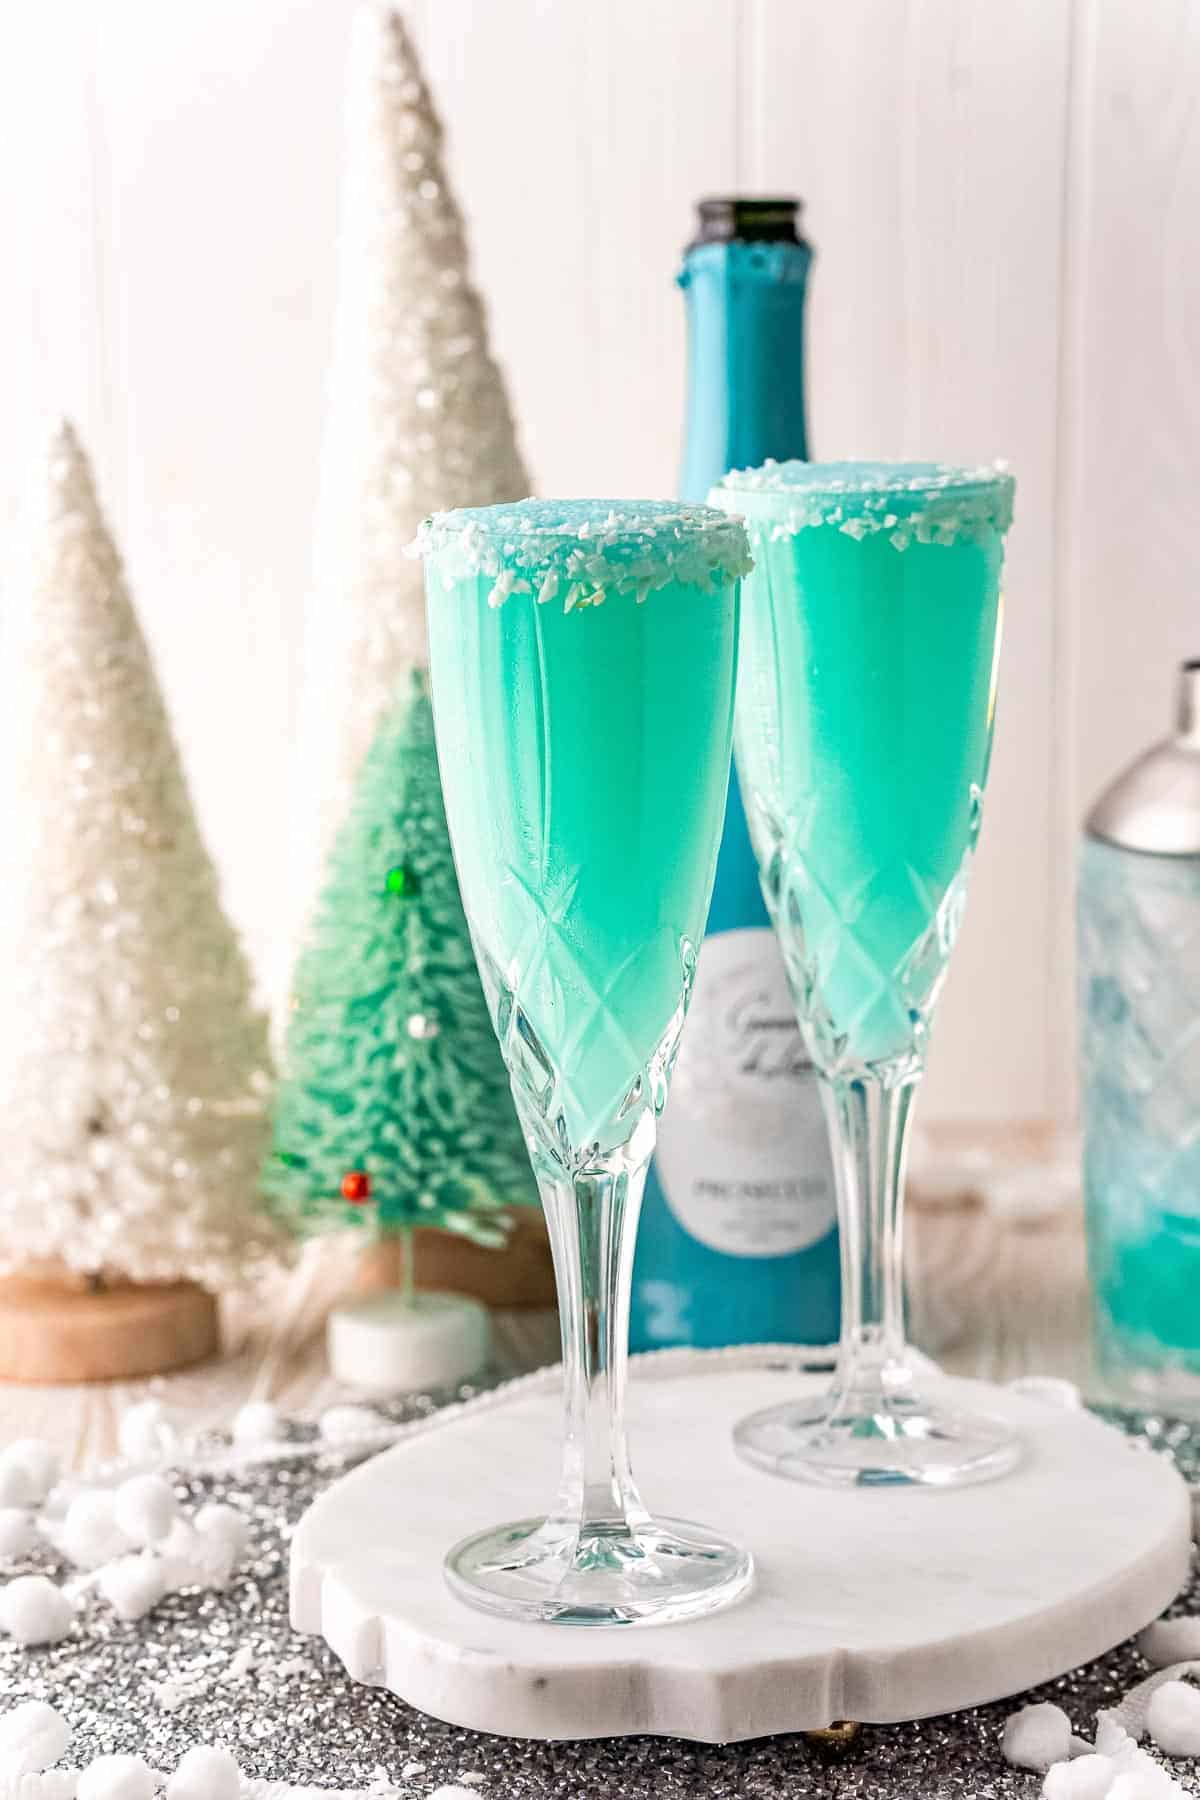 Two bright blue mimosas with a festive winter background.